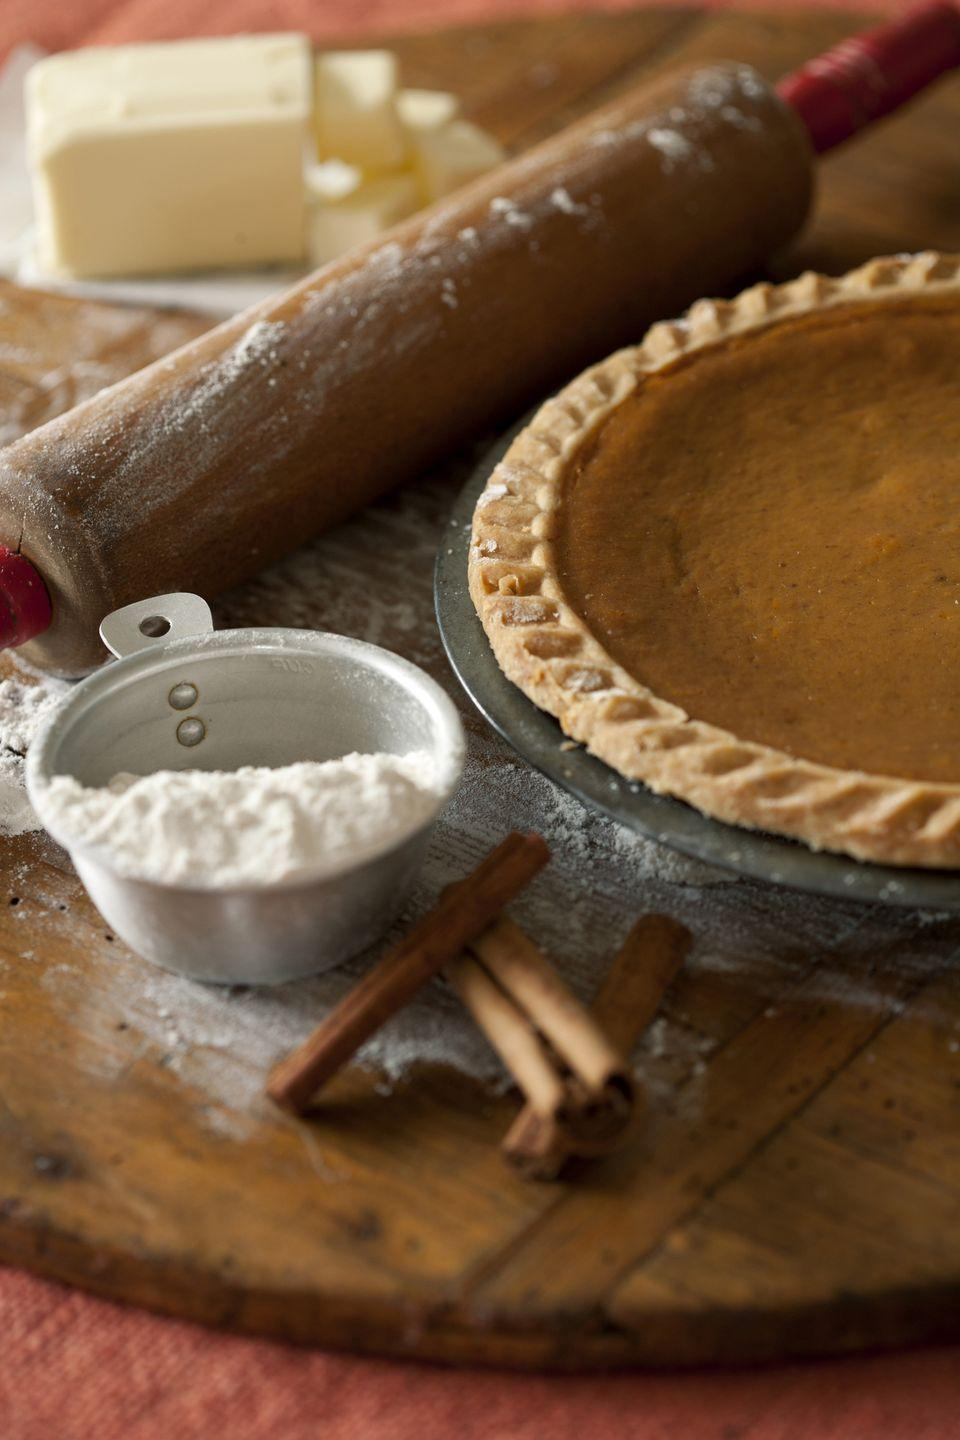 """<p>Celebrate Halloween with a pumpkin pie bake off. To keep things easy, have everyone bring over their dessert fresh out of the oven, then have a panel of unbiased judges (maybe the kiddos?) rate them on taste and presentation.</p><p><a class=""""link rapid-noclick-resp"""" href=""""https://www.amazon.com/Farberware-5172565-Advantage-Ceramic-10-Inch/dp/B07M9CJR8W/?tag=syn-yahoo-20&ascsubtag=%5Bartid%7C10072.g.28787574%5Bsrc%7Cyahoo-us"""" rel=""""nofollow noopener"""" target=""""_blank"""" data-ylk=""""slk:SHOP PIE PANS"""">SHOP PIE PANS</a></p>"""